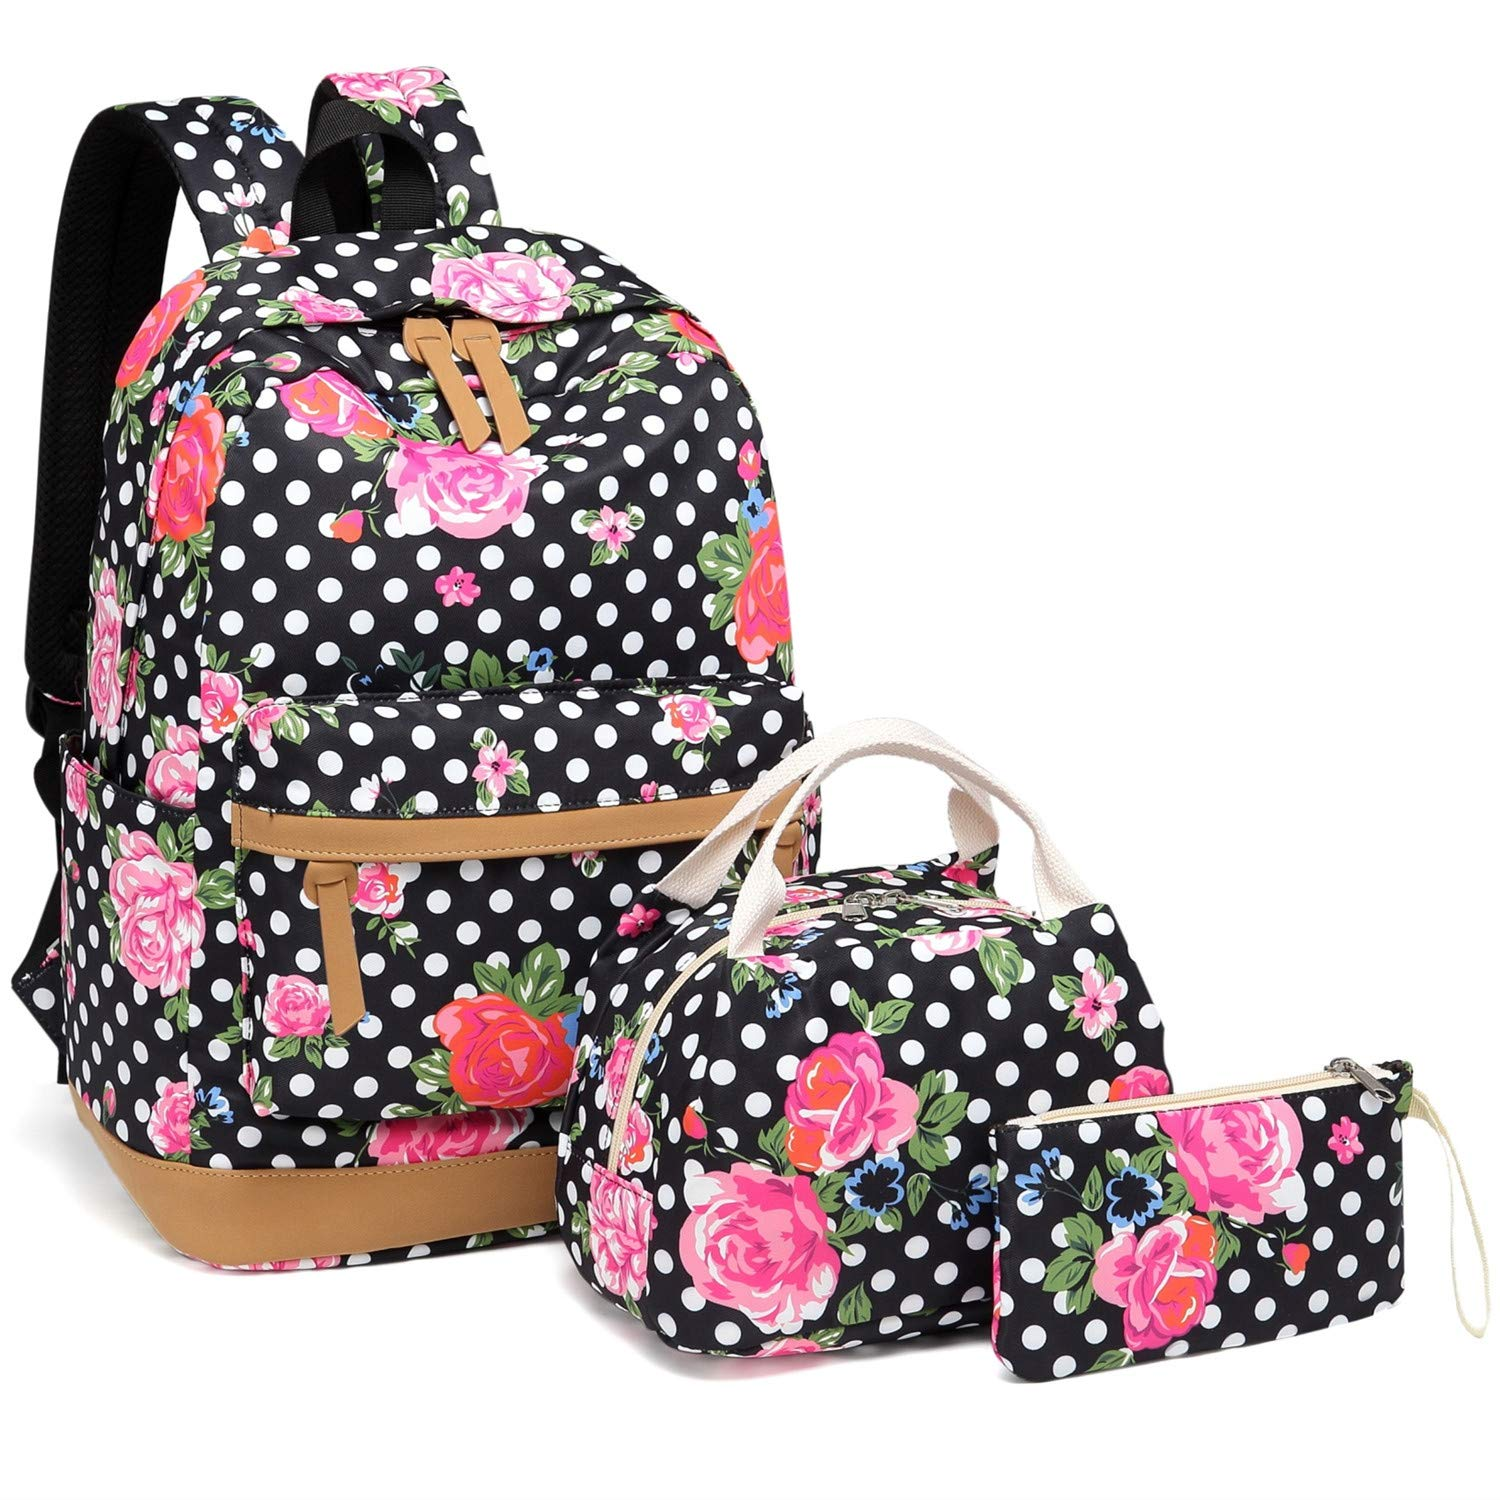 BLUBOON Girls School Backpack Bags Teens Bookbag with Lunch Box and Pencil  Case Cute (Black-E0025)